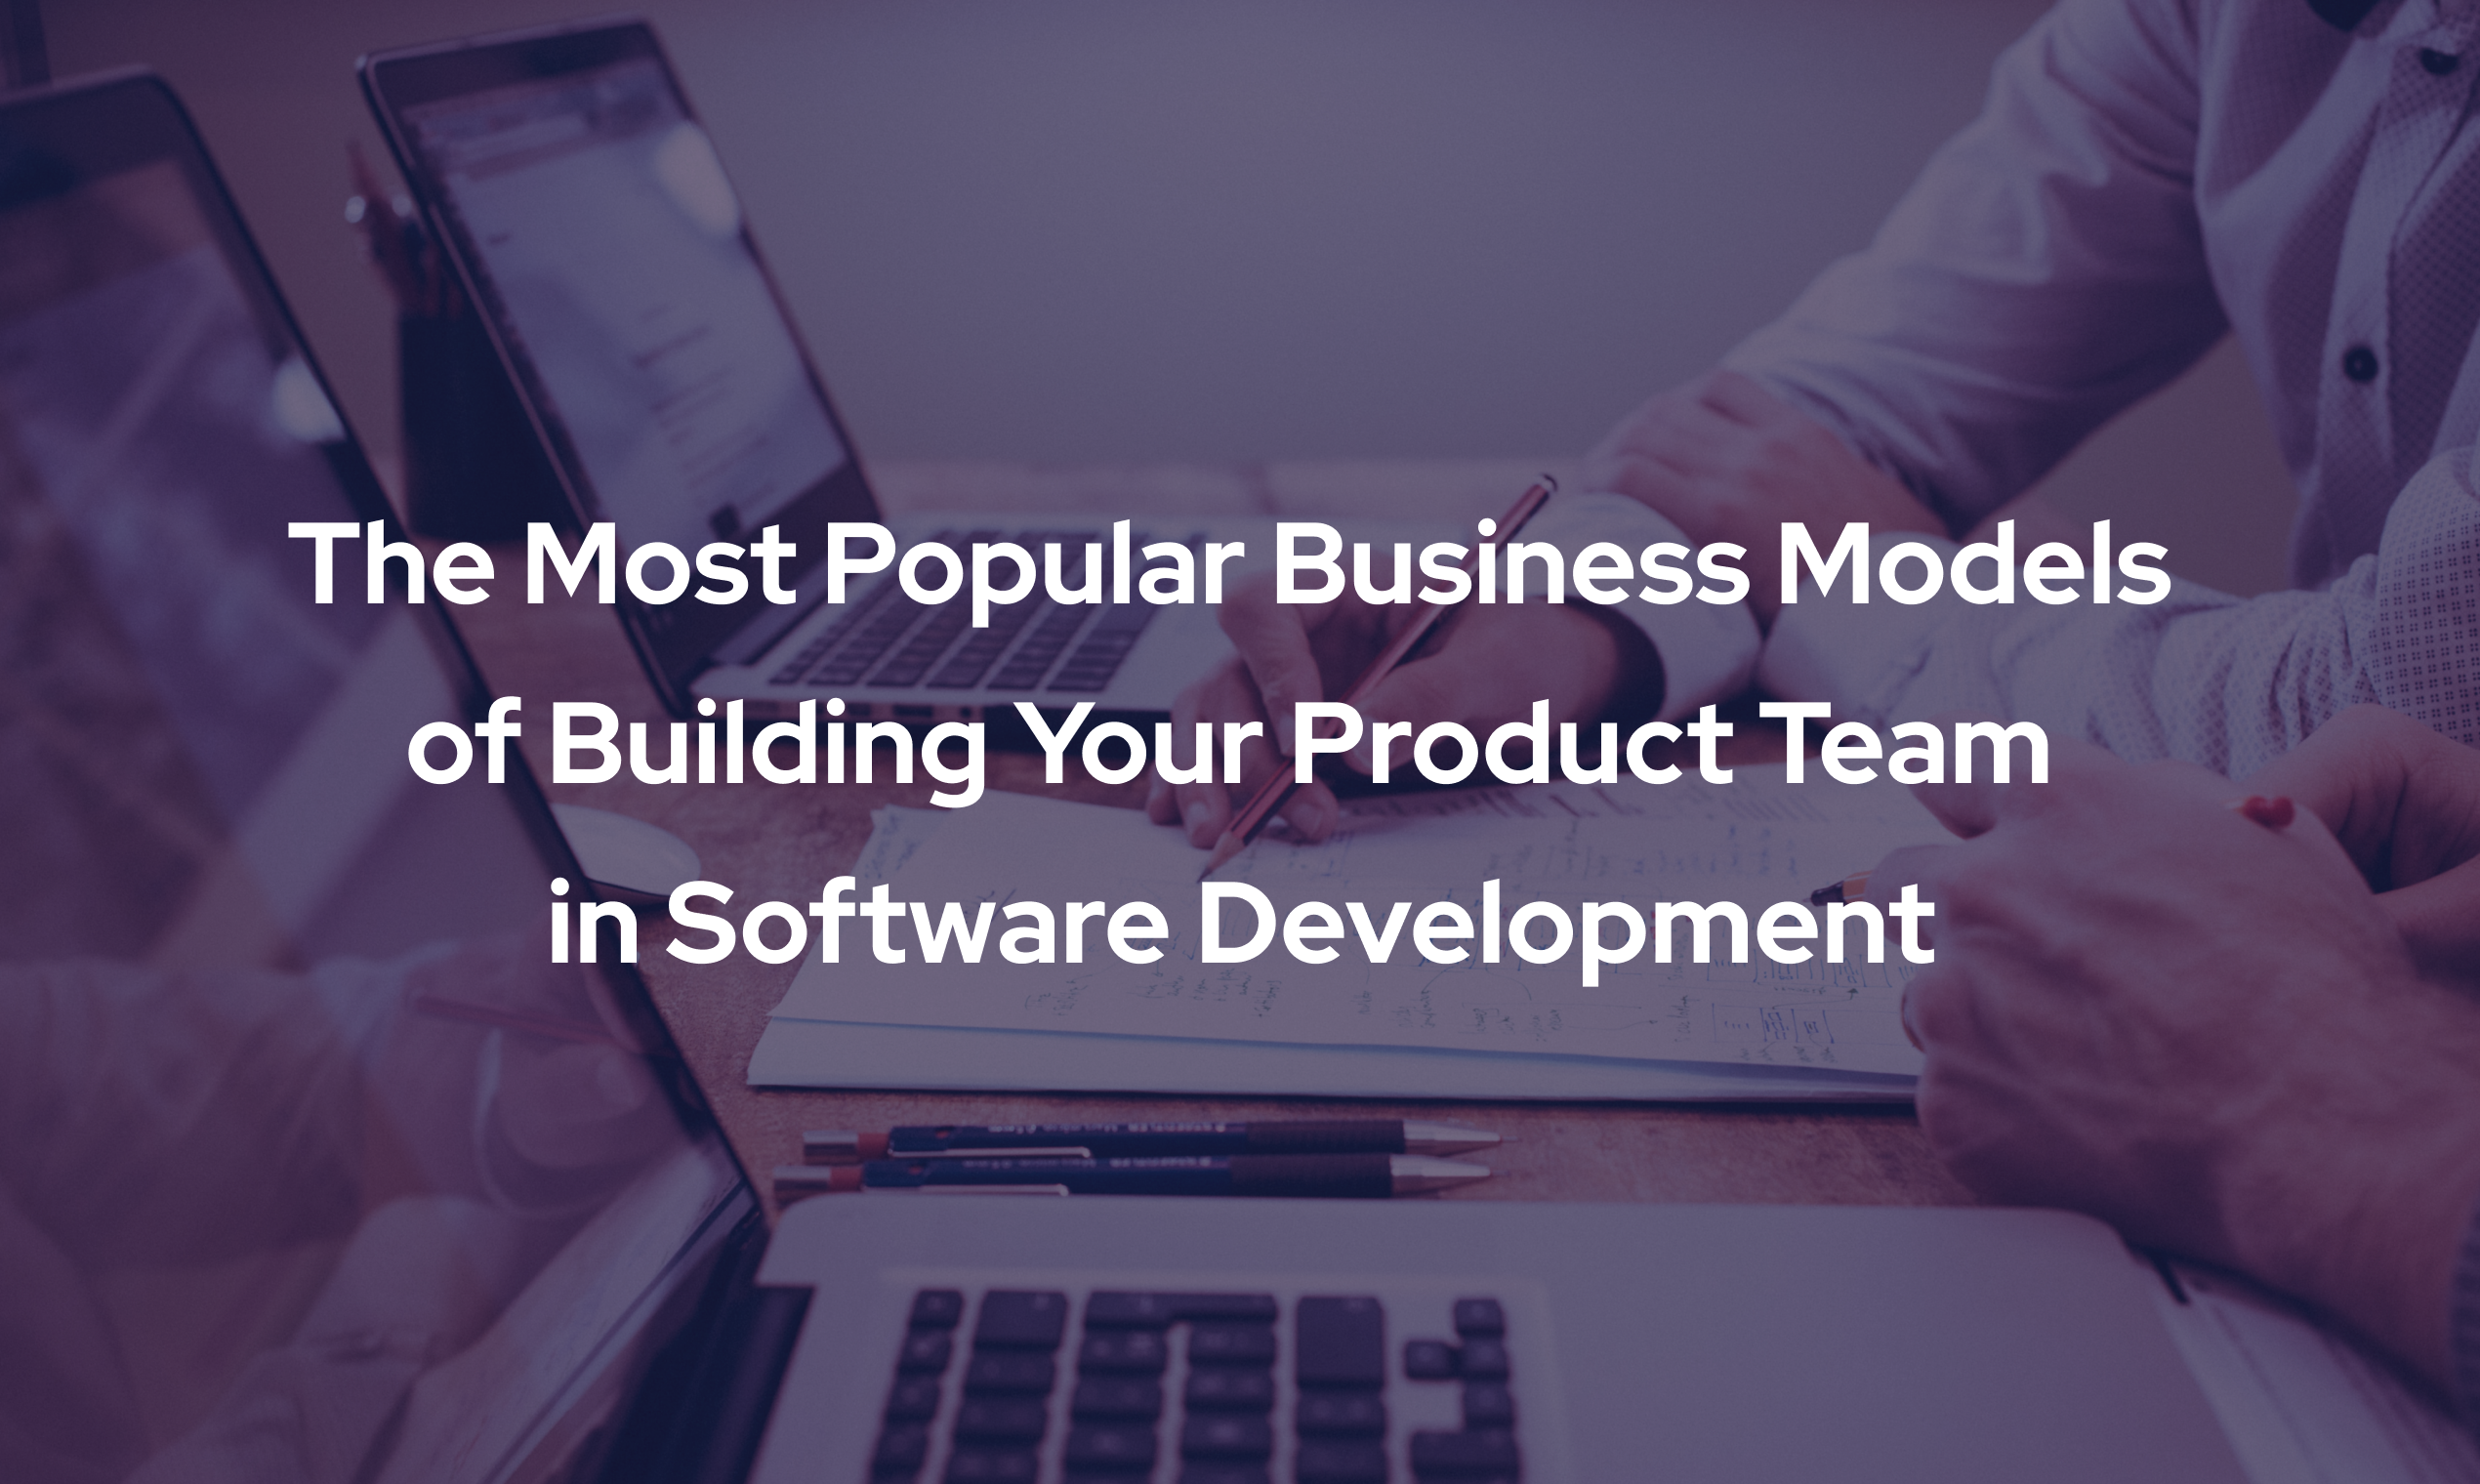 The Most Popular Business Models of Building Your Product Team in Software Development